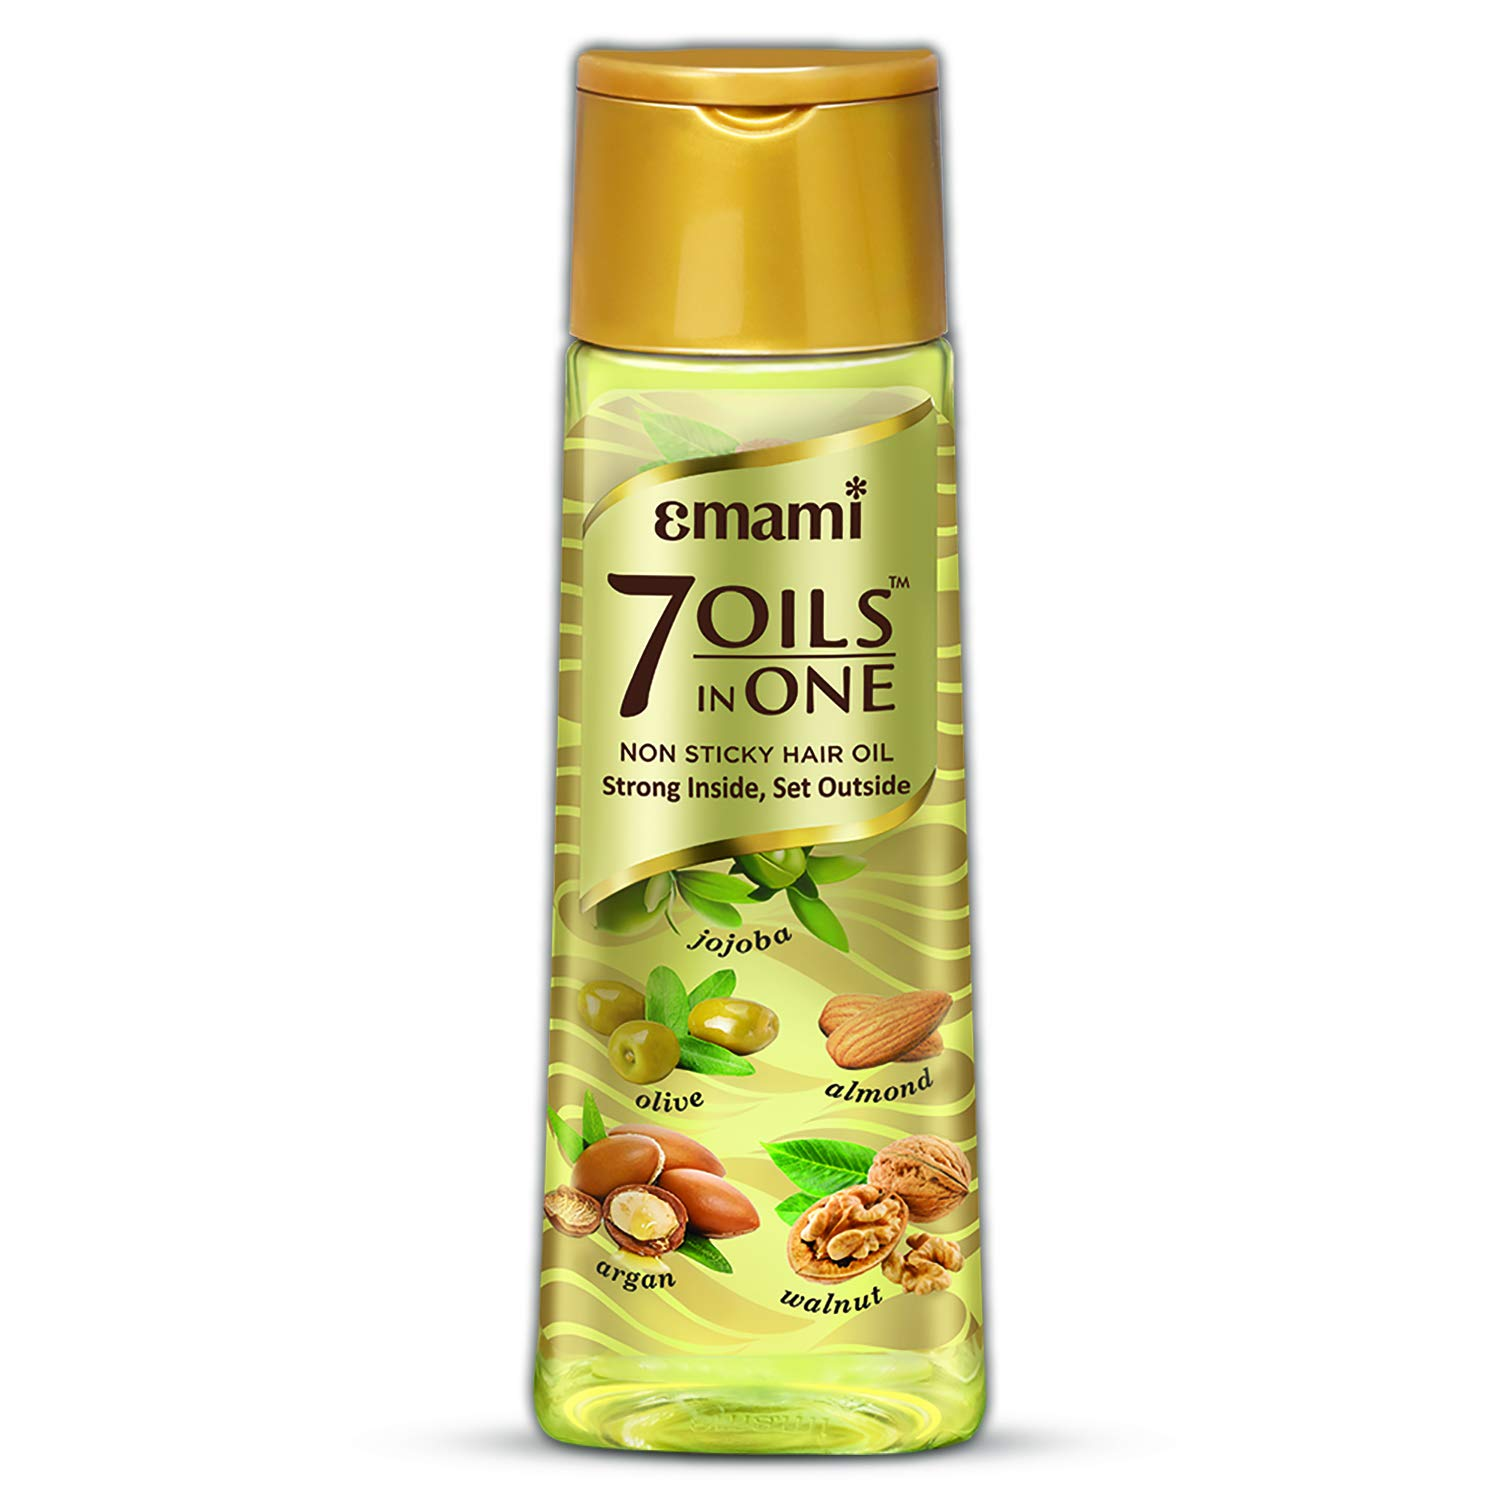 Emami 7 Oils in One Non Sticky Hair Oil Strong Inside, Set Outside ...